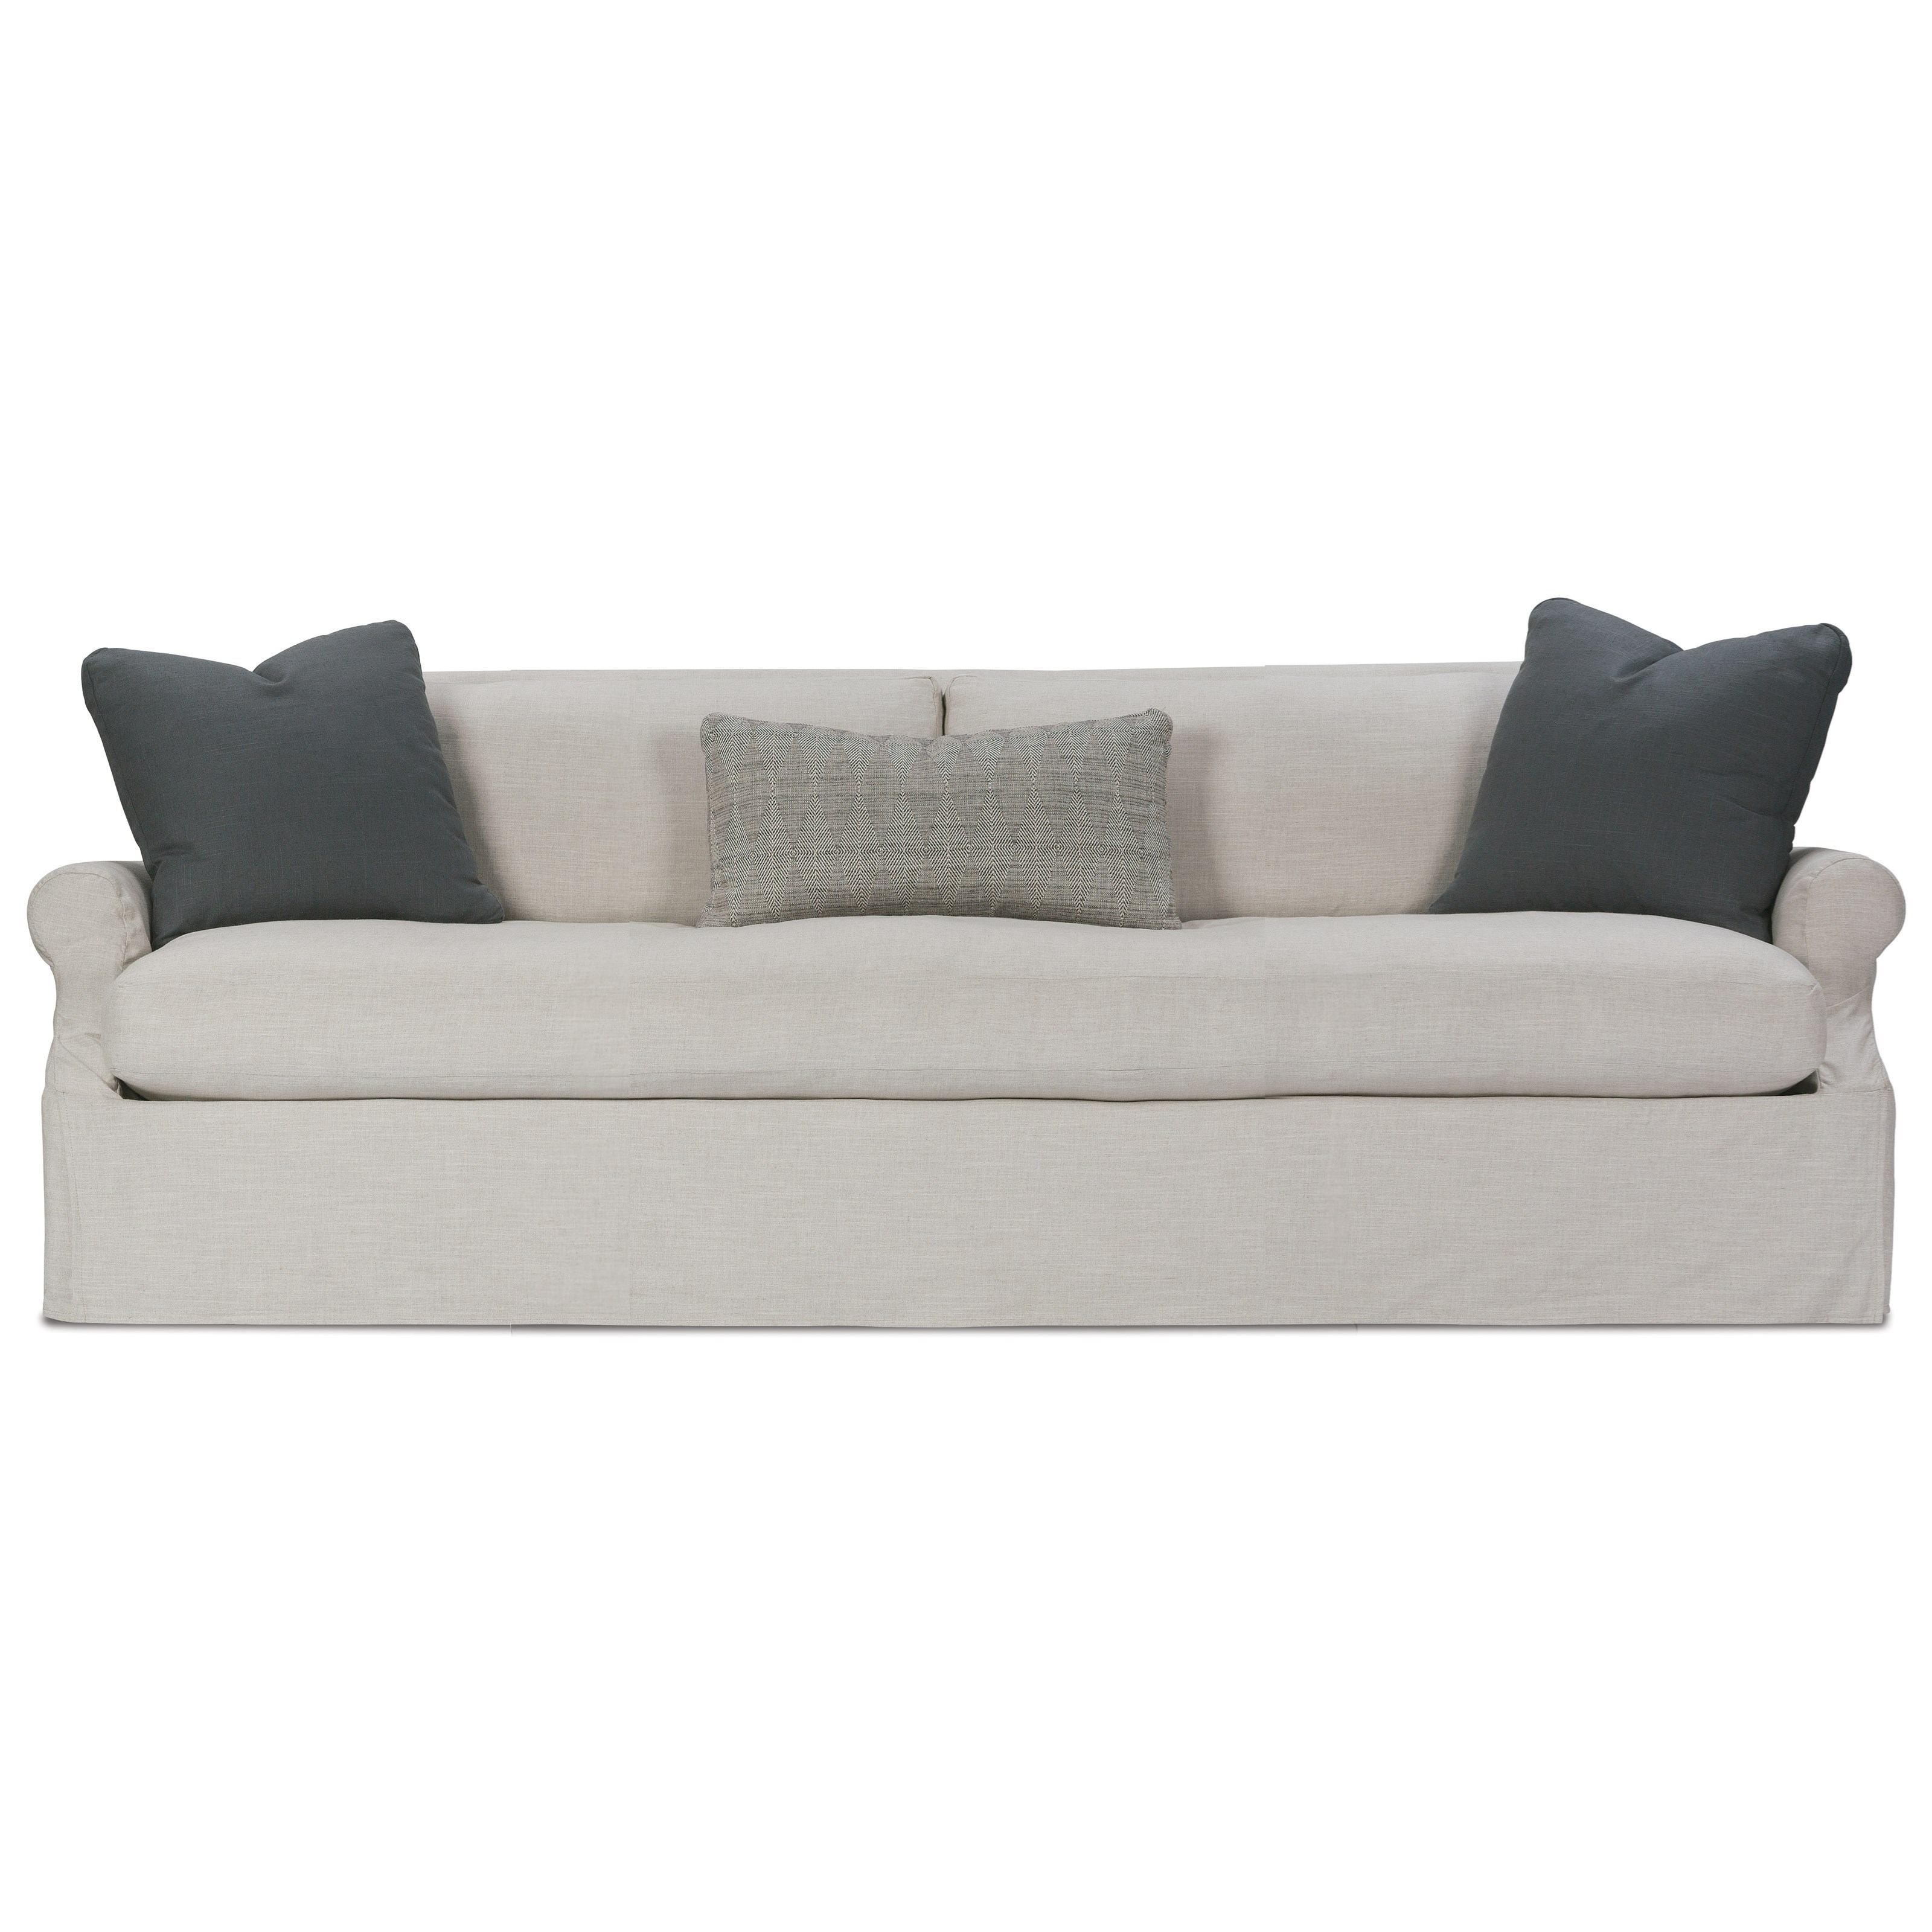 Sofa with Slip Cover